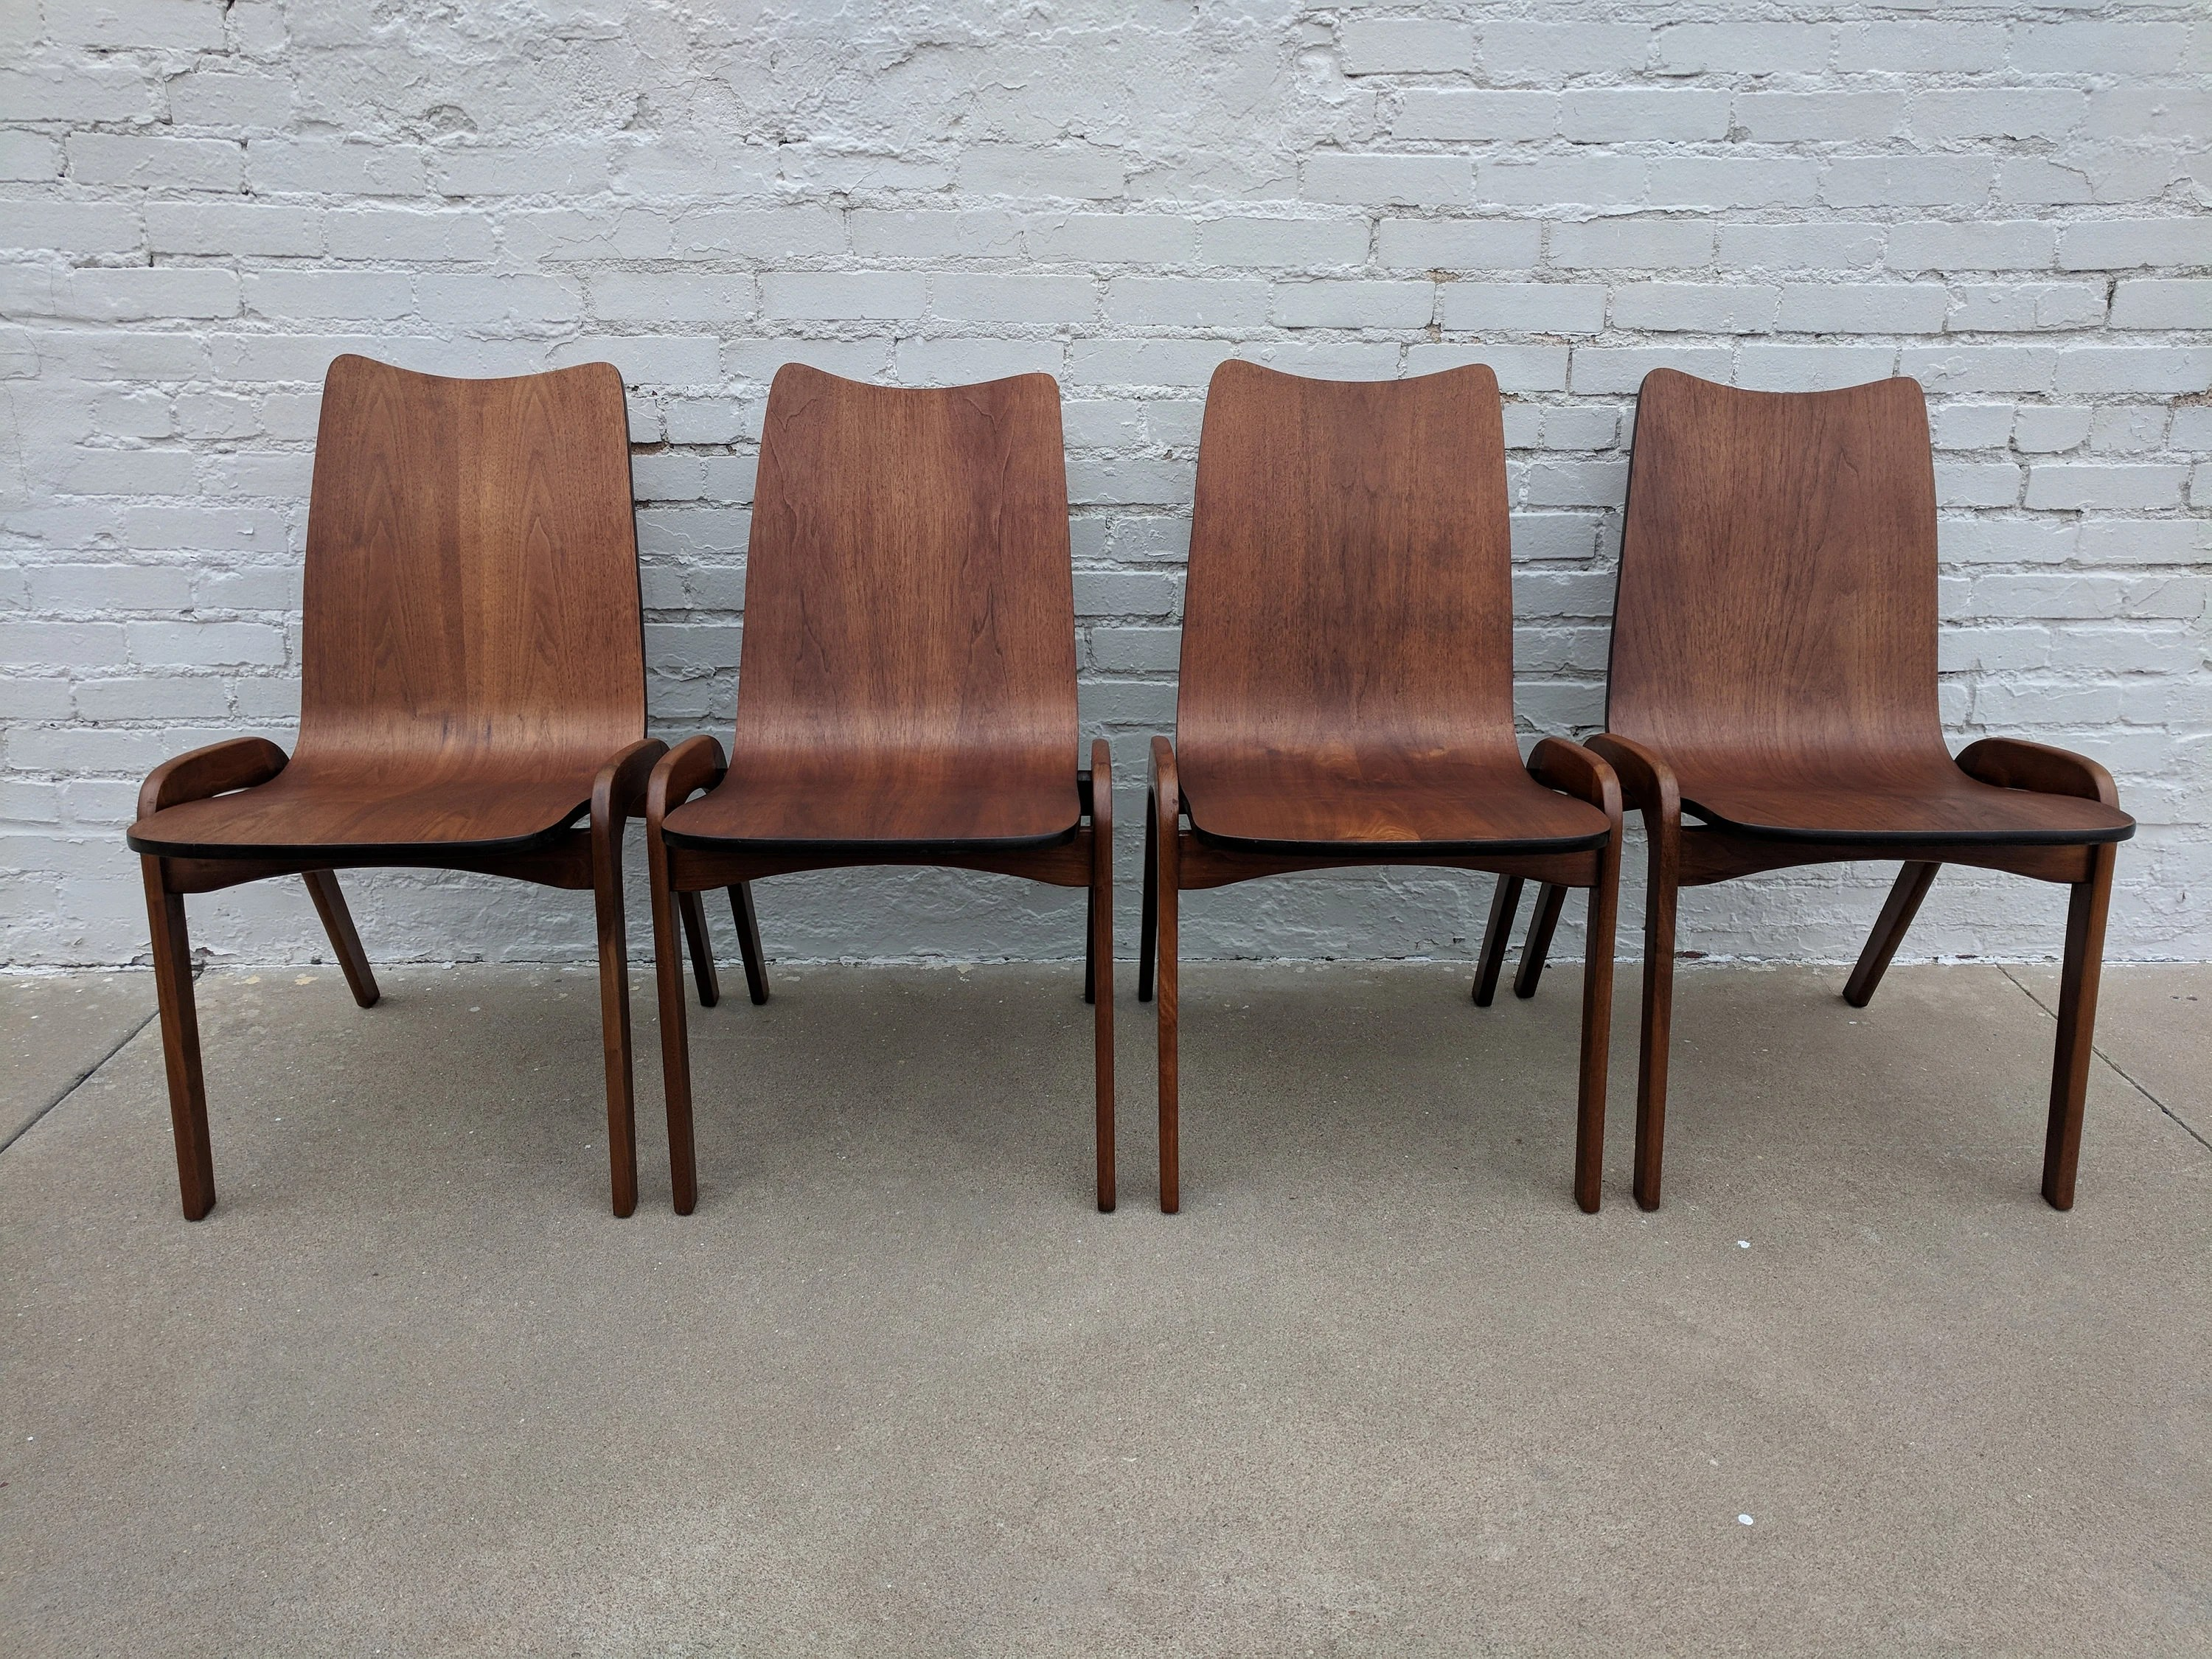 bentwood dining chair hag posture mid century modern set of four etsy image 0